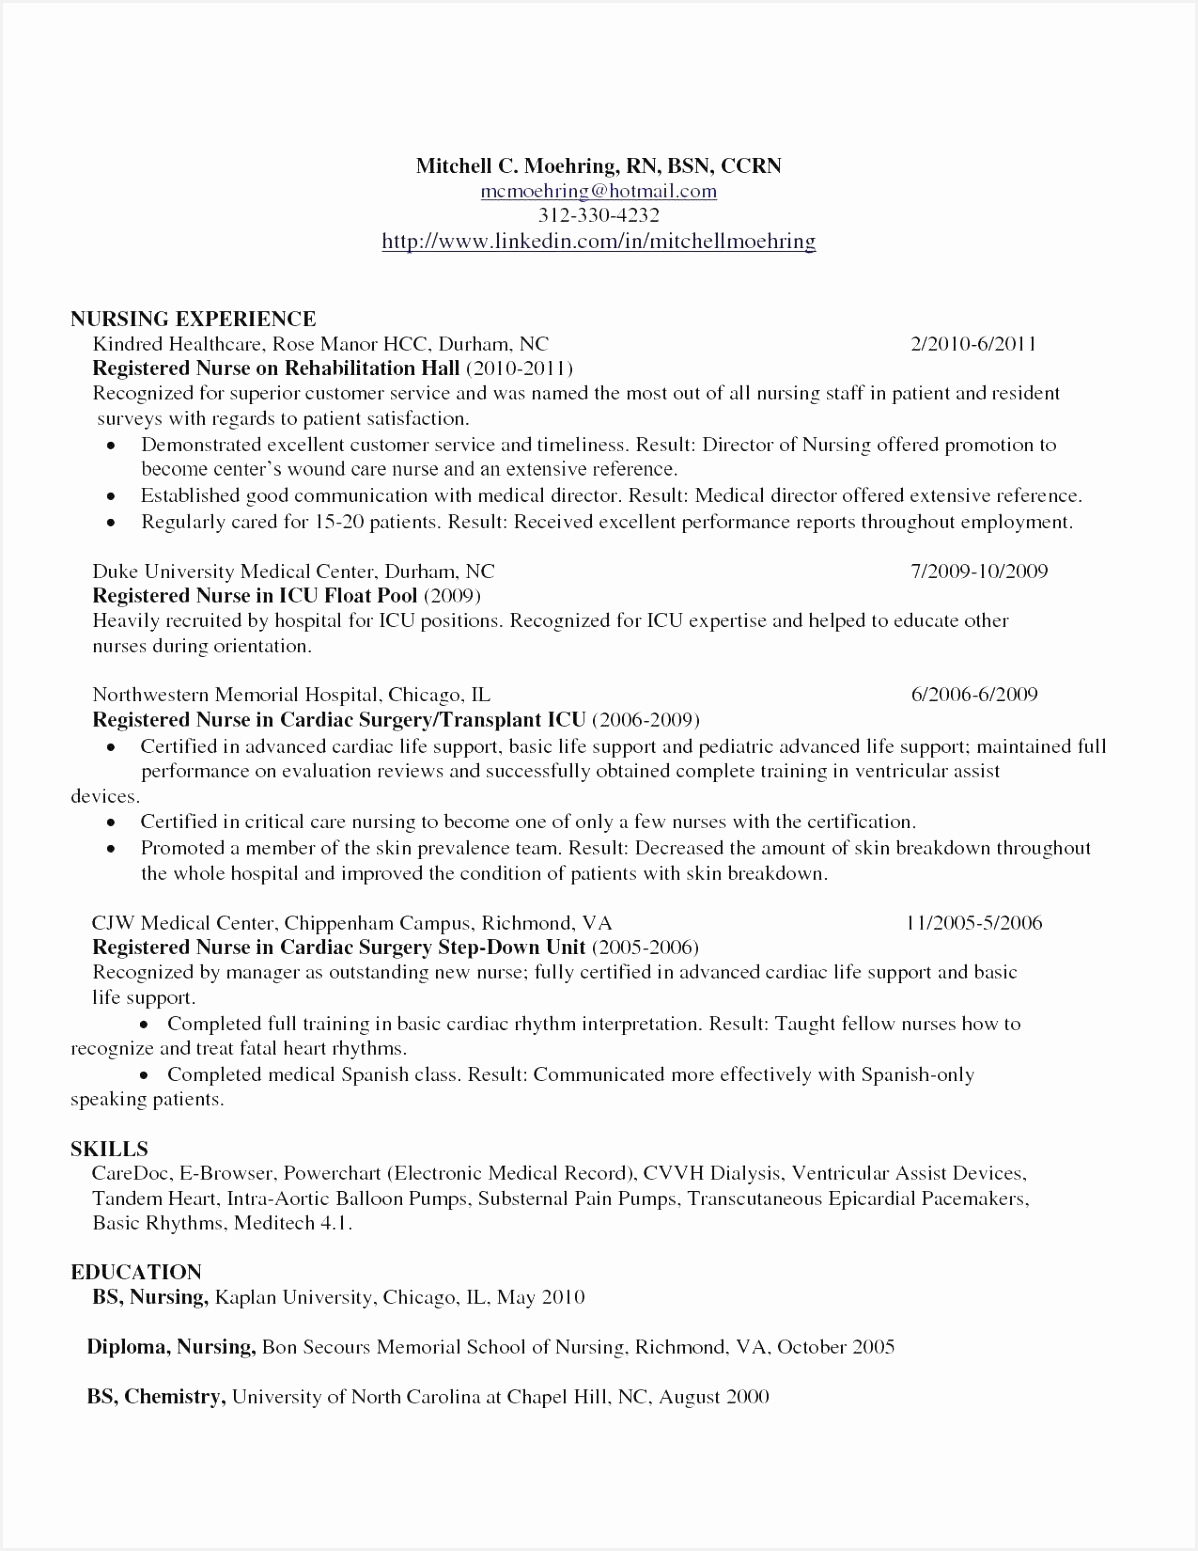 Nurse Graduate Resume Ysfhc Fresh 24 Rn New Graduate Resume Of Nurse Graduate Resume Fiauf Inspirational New Grad Resume Inspirational Lvn Nursing Resume Examples Awesome